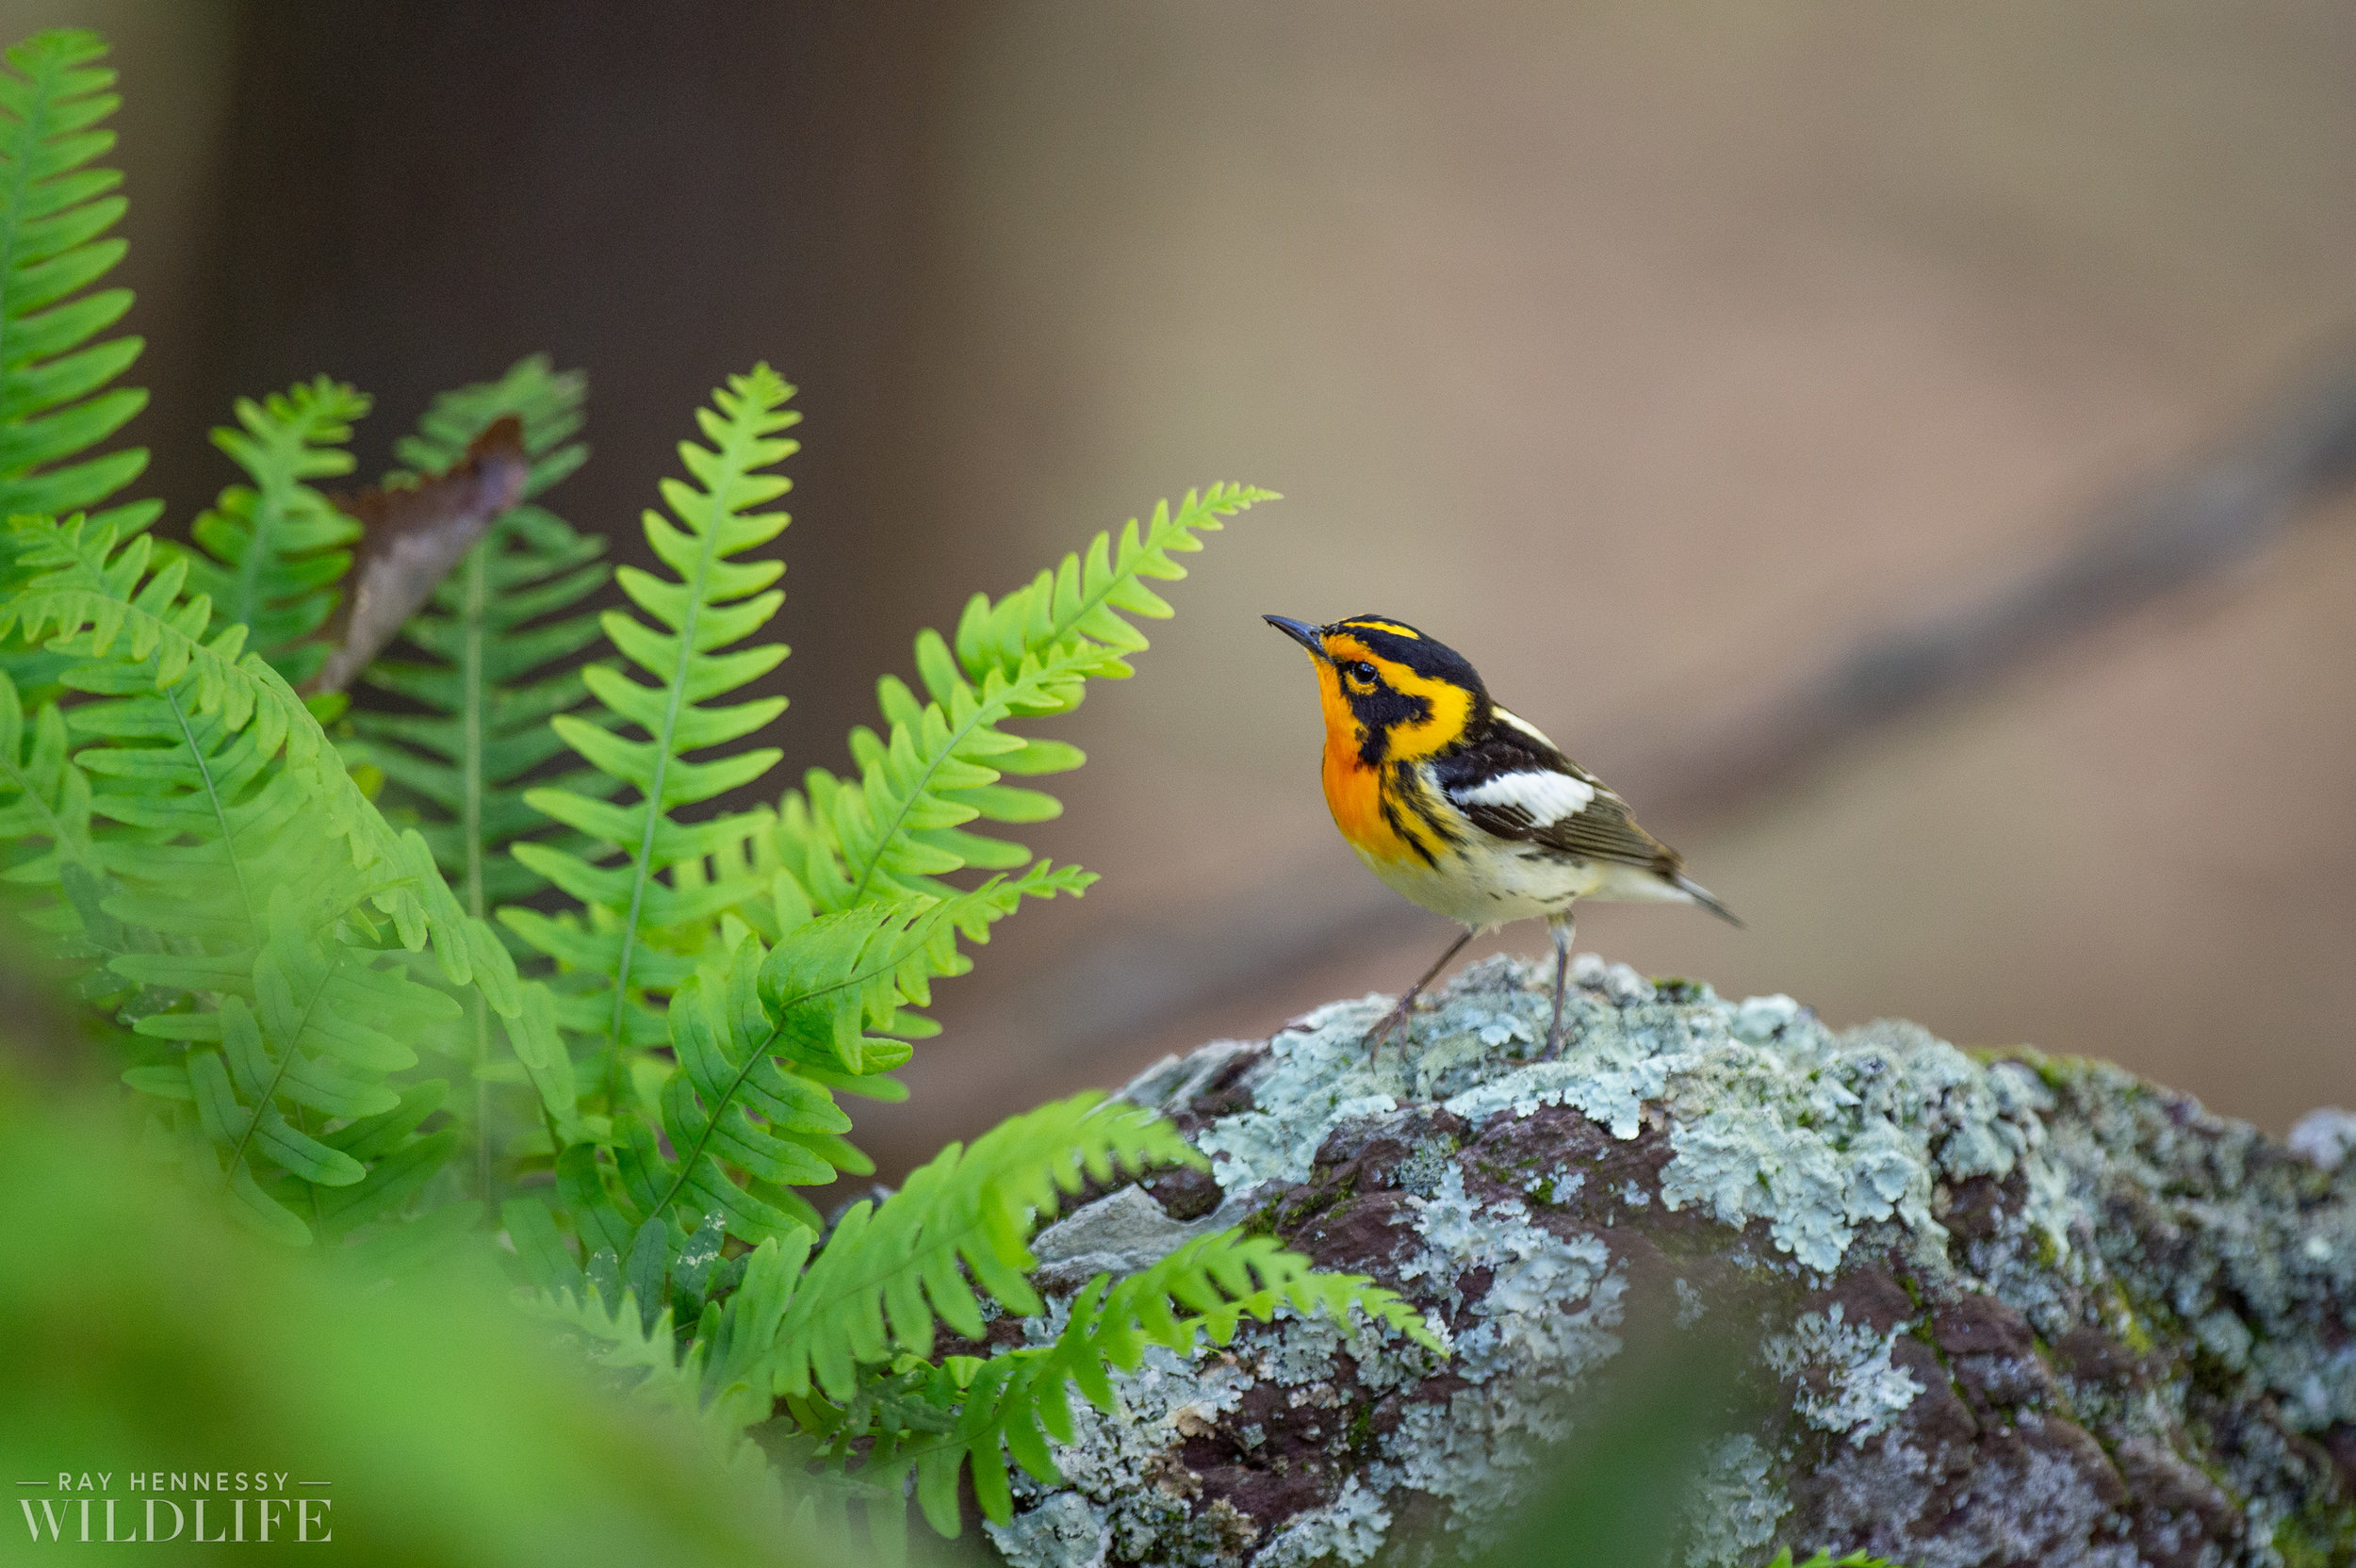 010_nothern-new-jersey-warblers.jpg